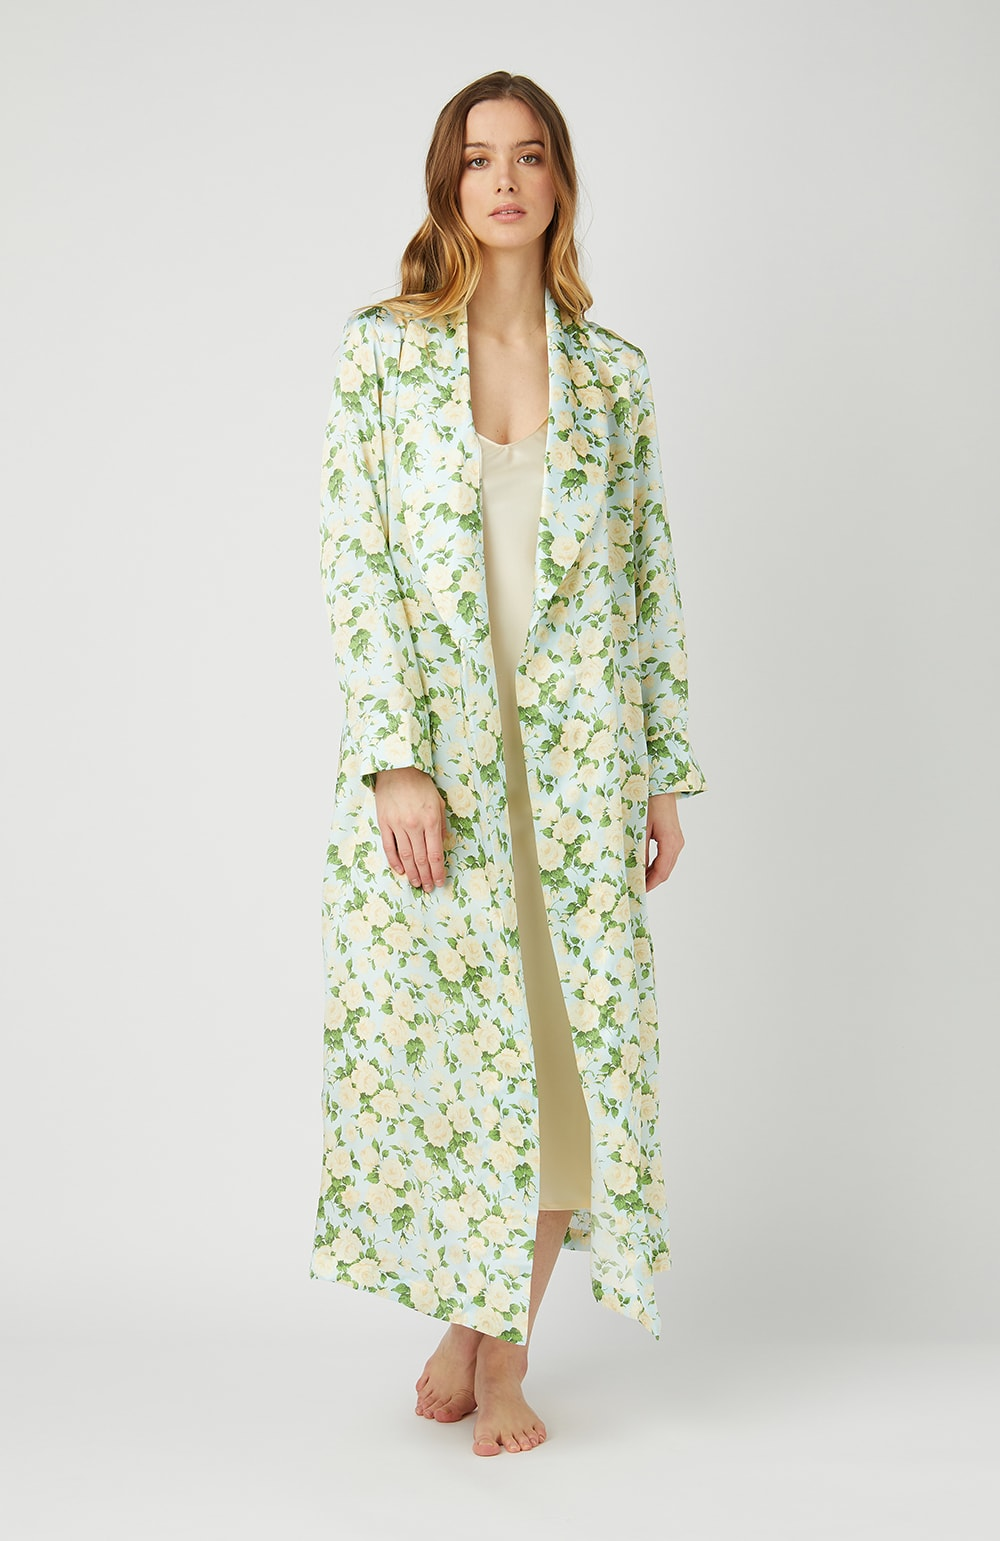 Liberty Print Silk Bathrobe - Open